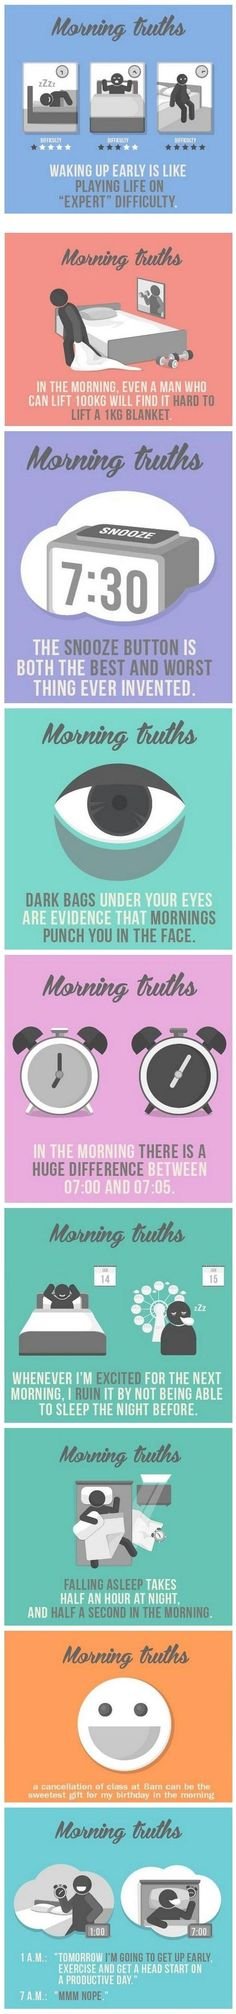 I can so relate to the first illustration. The one about dark circles under the eyes is hilarious!! Funny stuff :)